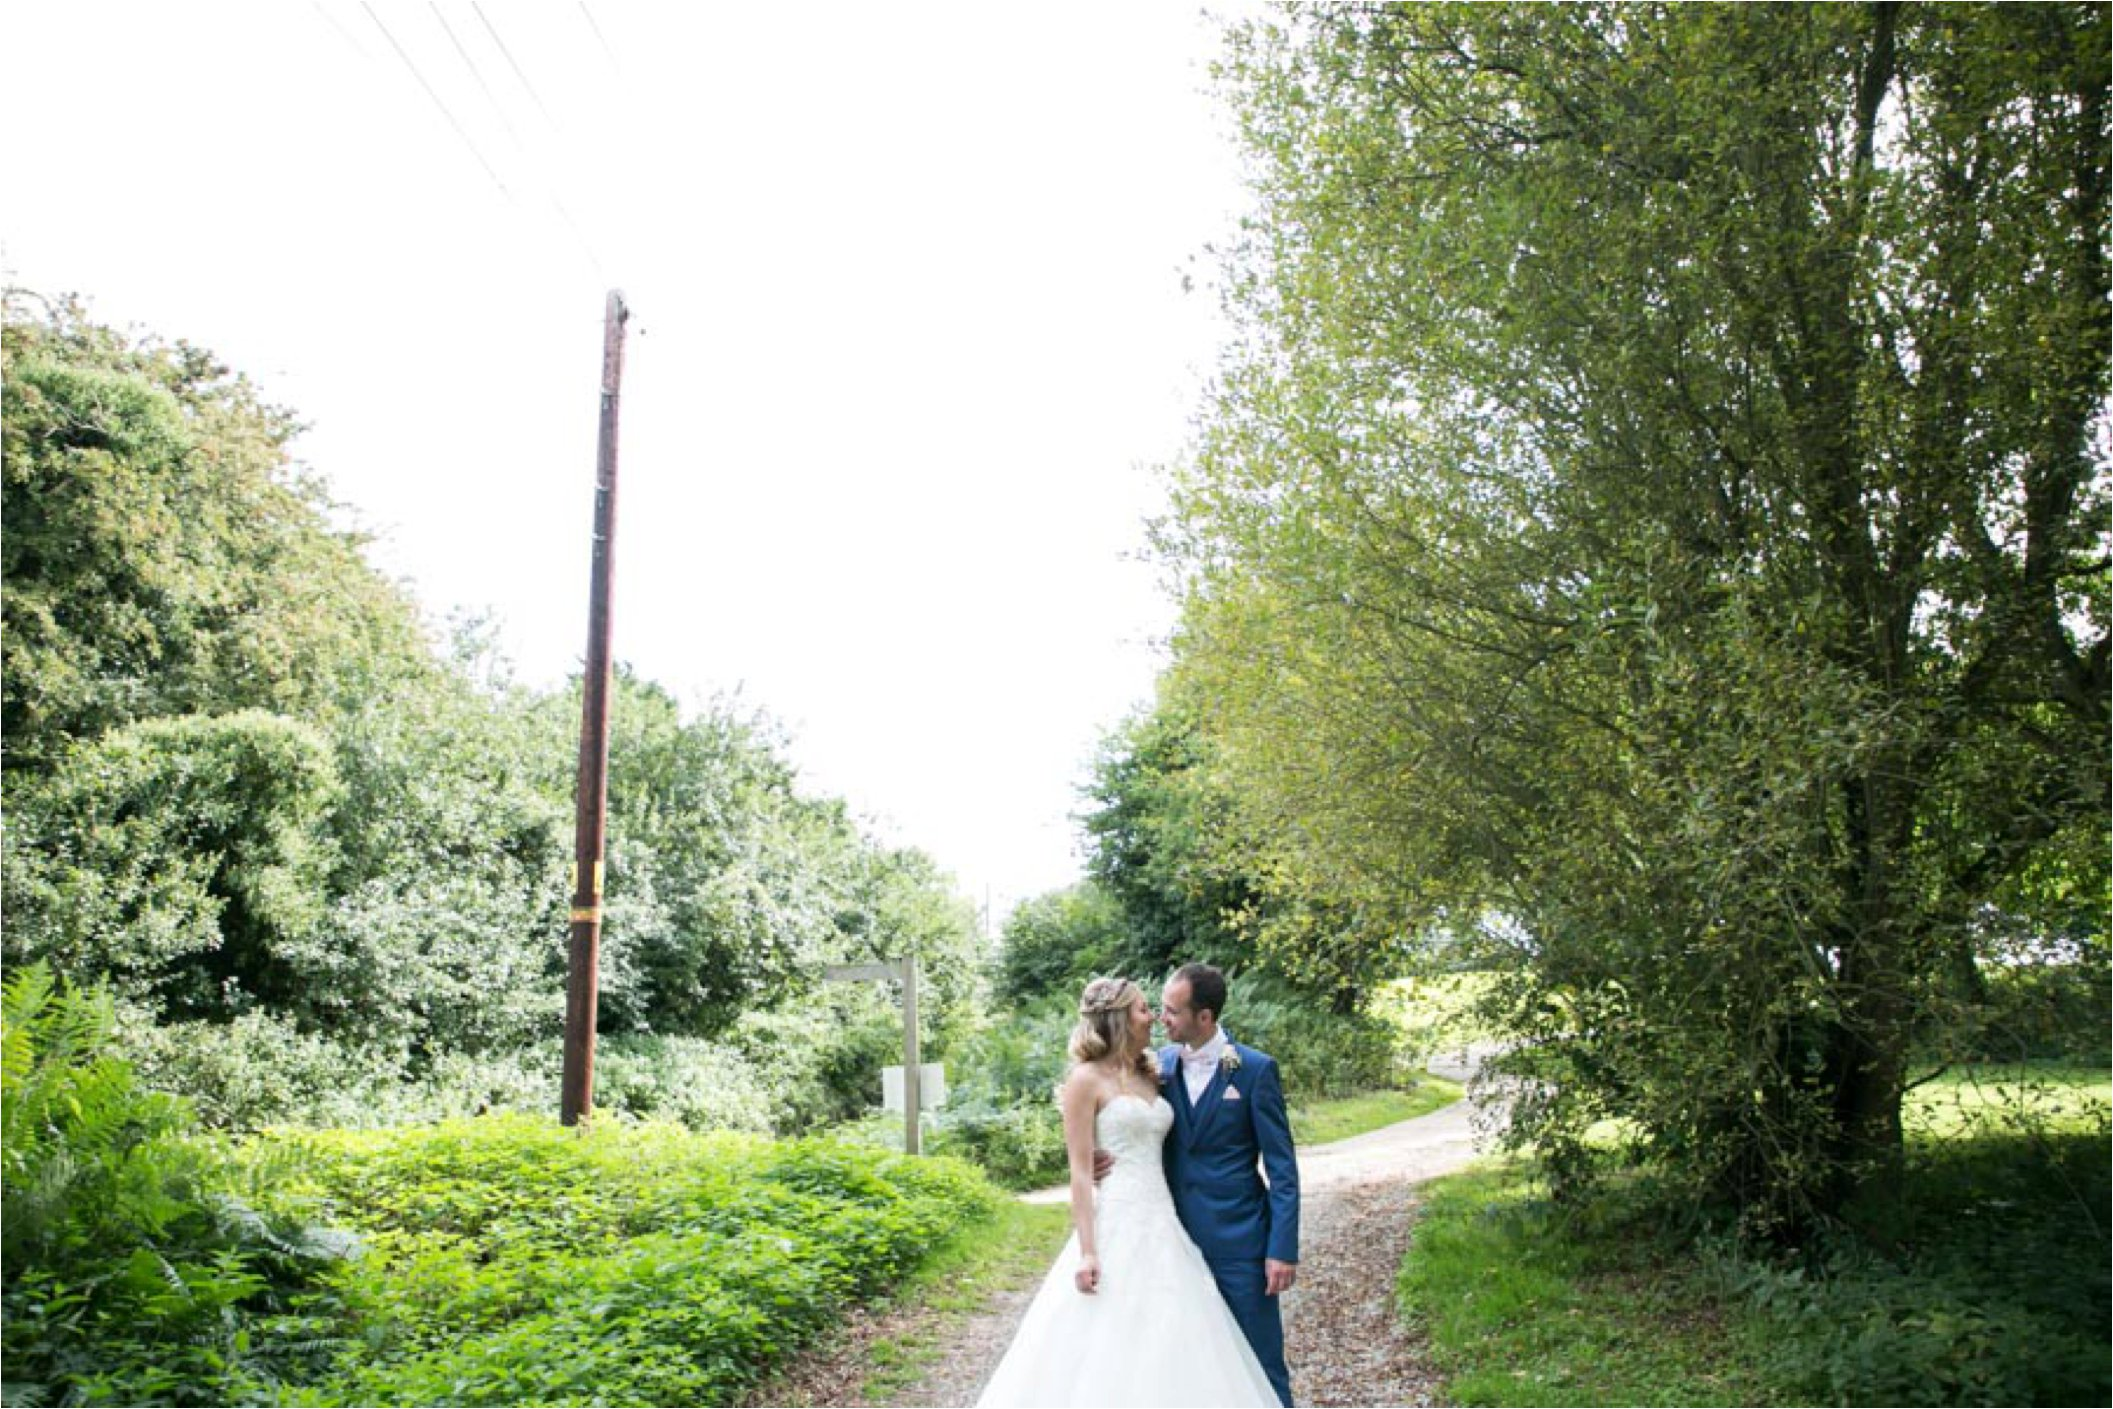 natural couples portraits stoke by nayland golf club